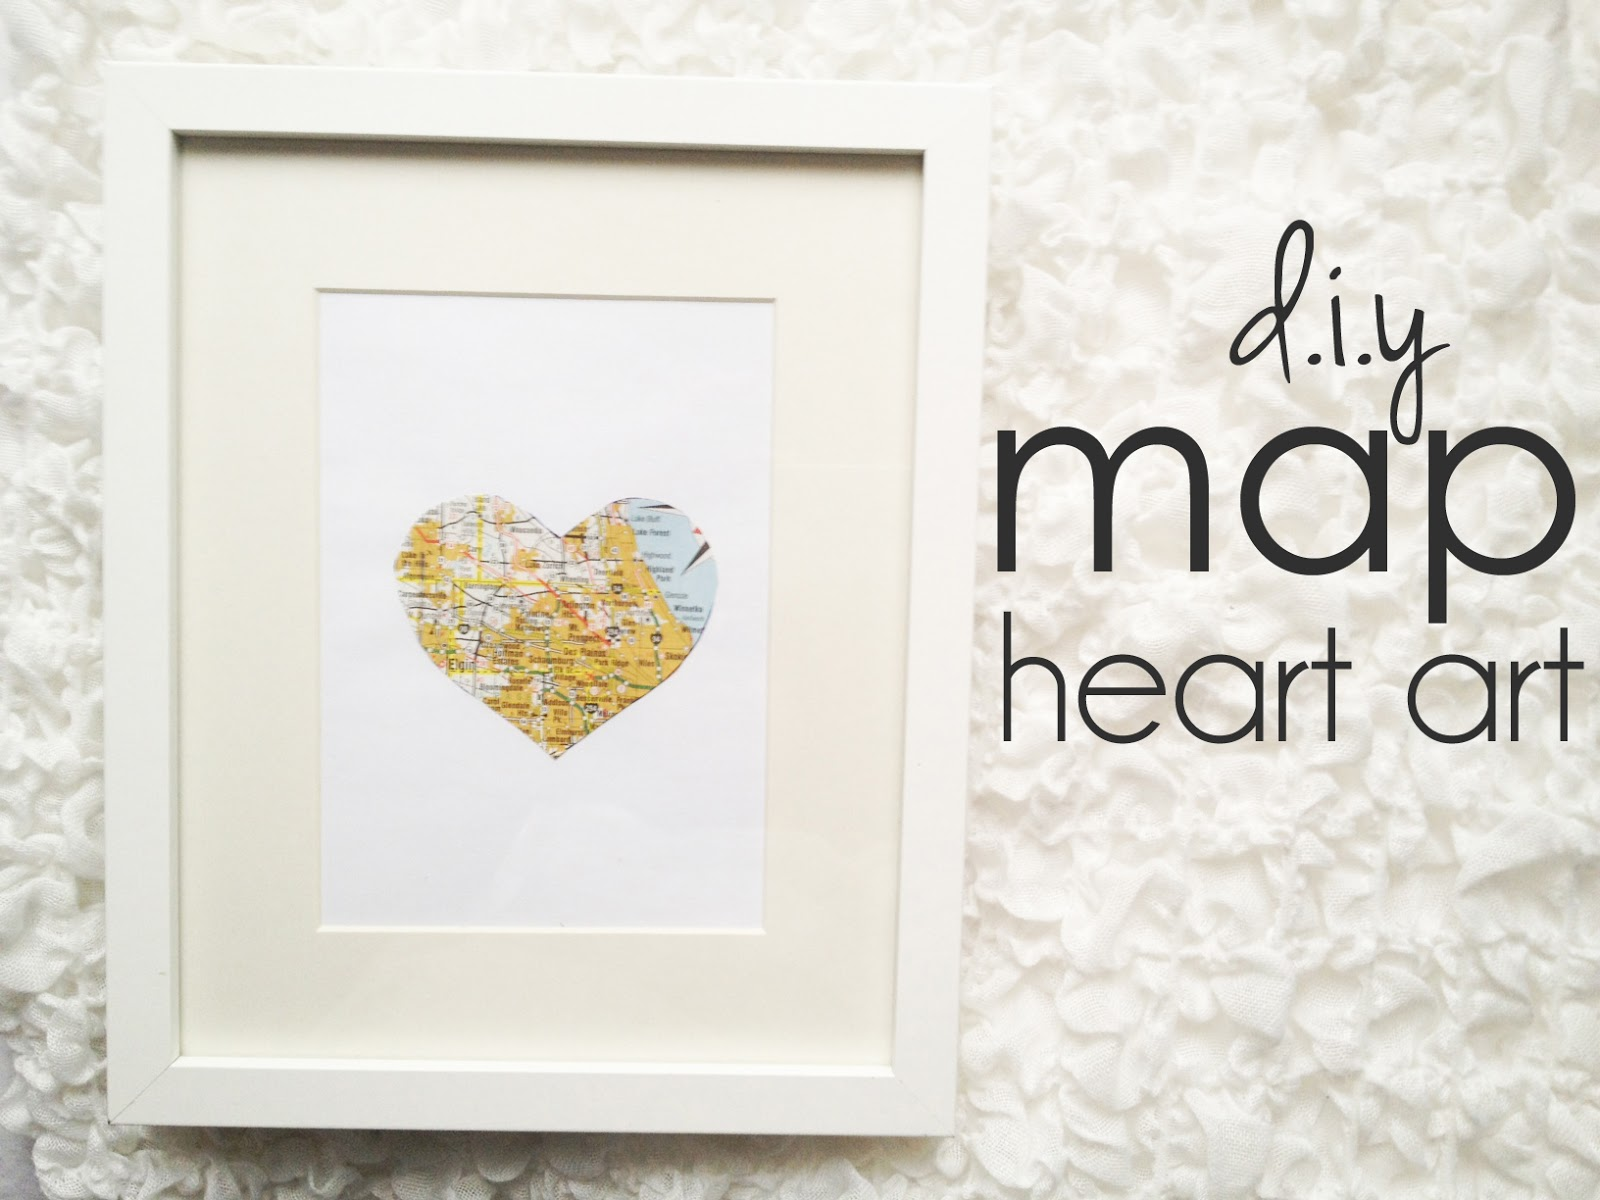 Lovely DIY map heart art at Cinsarah